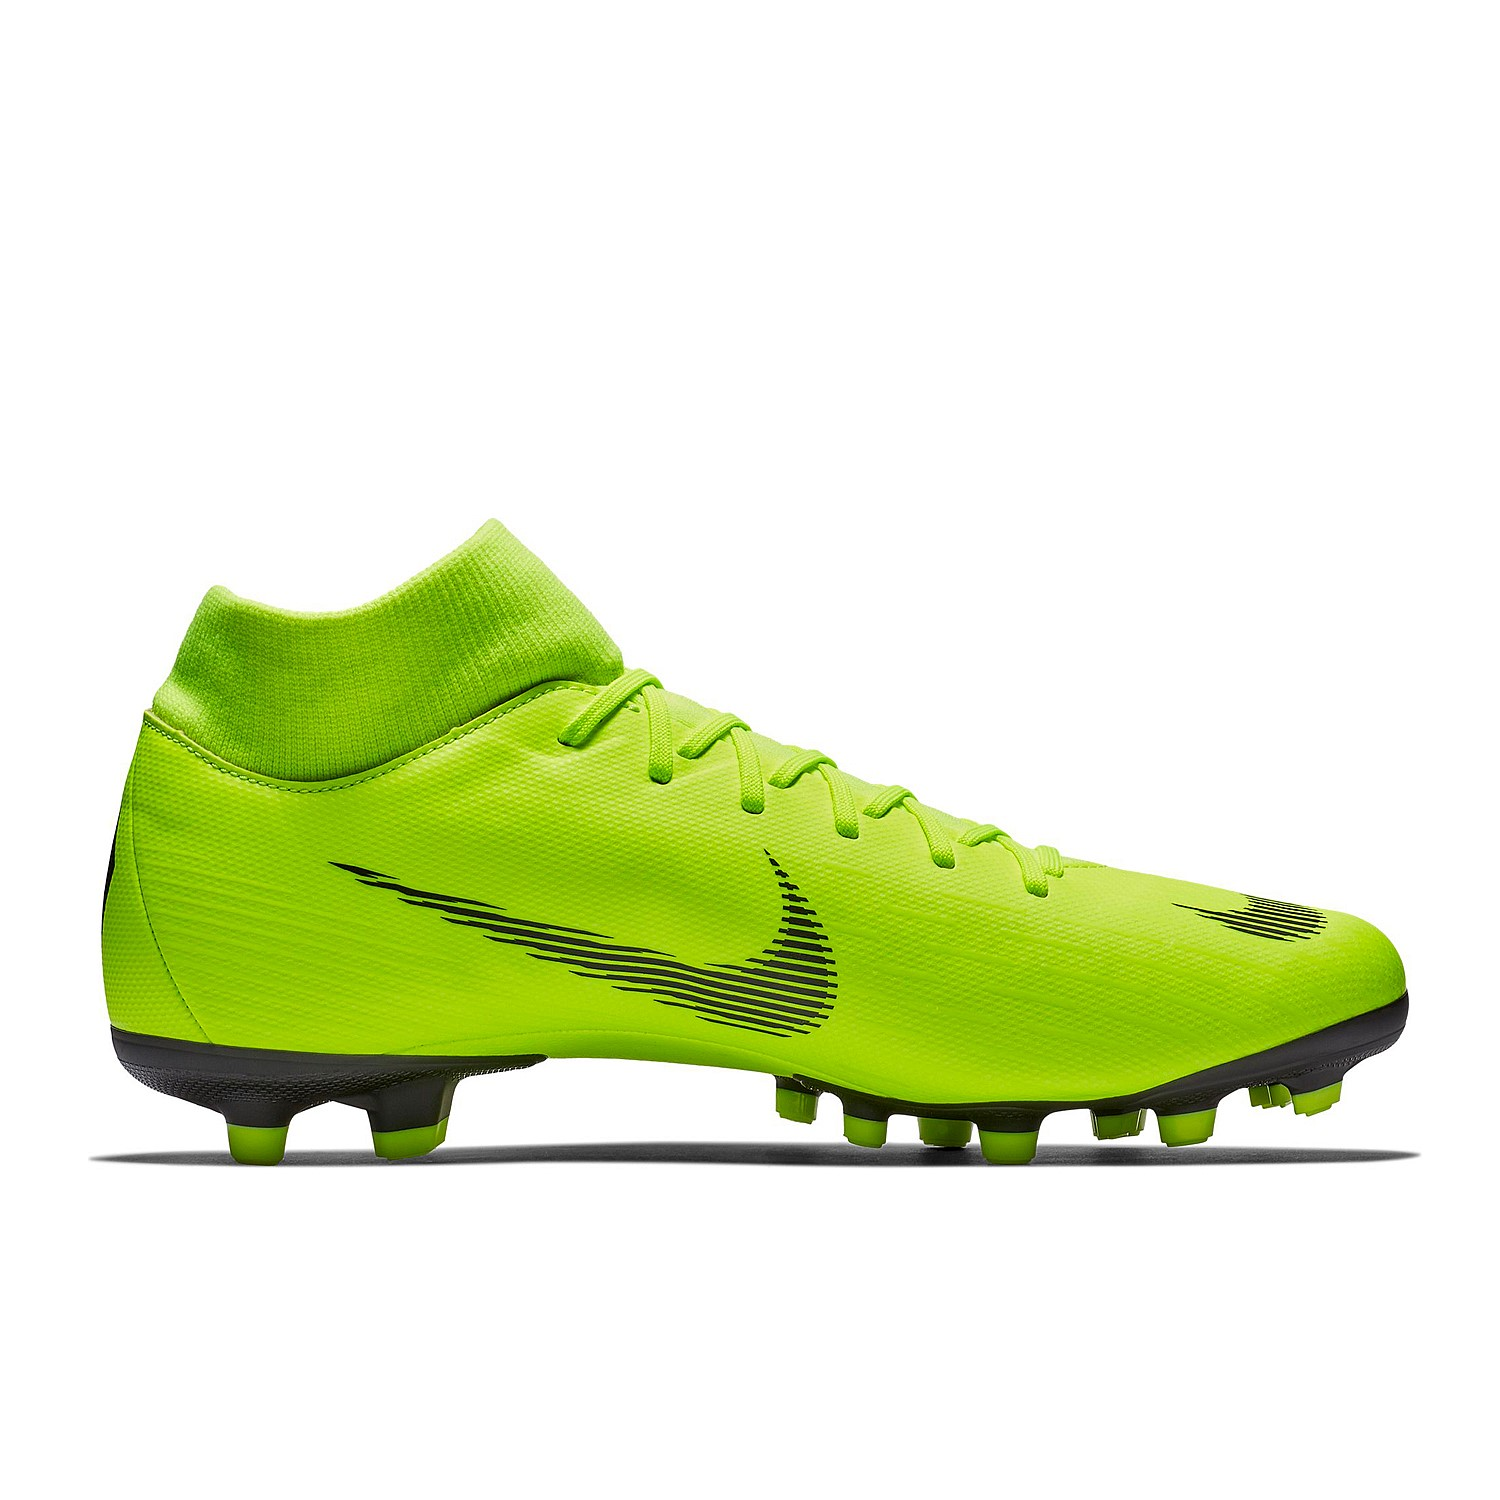 finest selection 9a35c 97dd1 Men s Rugby   Football Boots   Shop Men s Rugby   Football Boots Online    Stirling Sports - Superfly 6 Academy Firm-Ground Mens